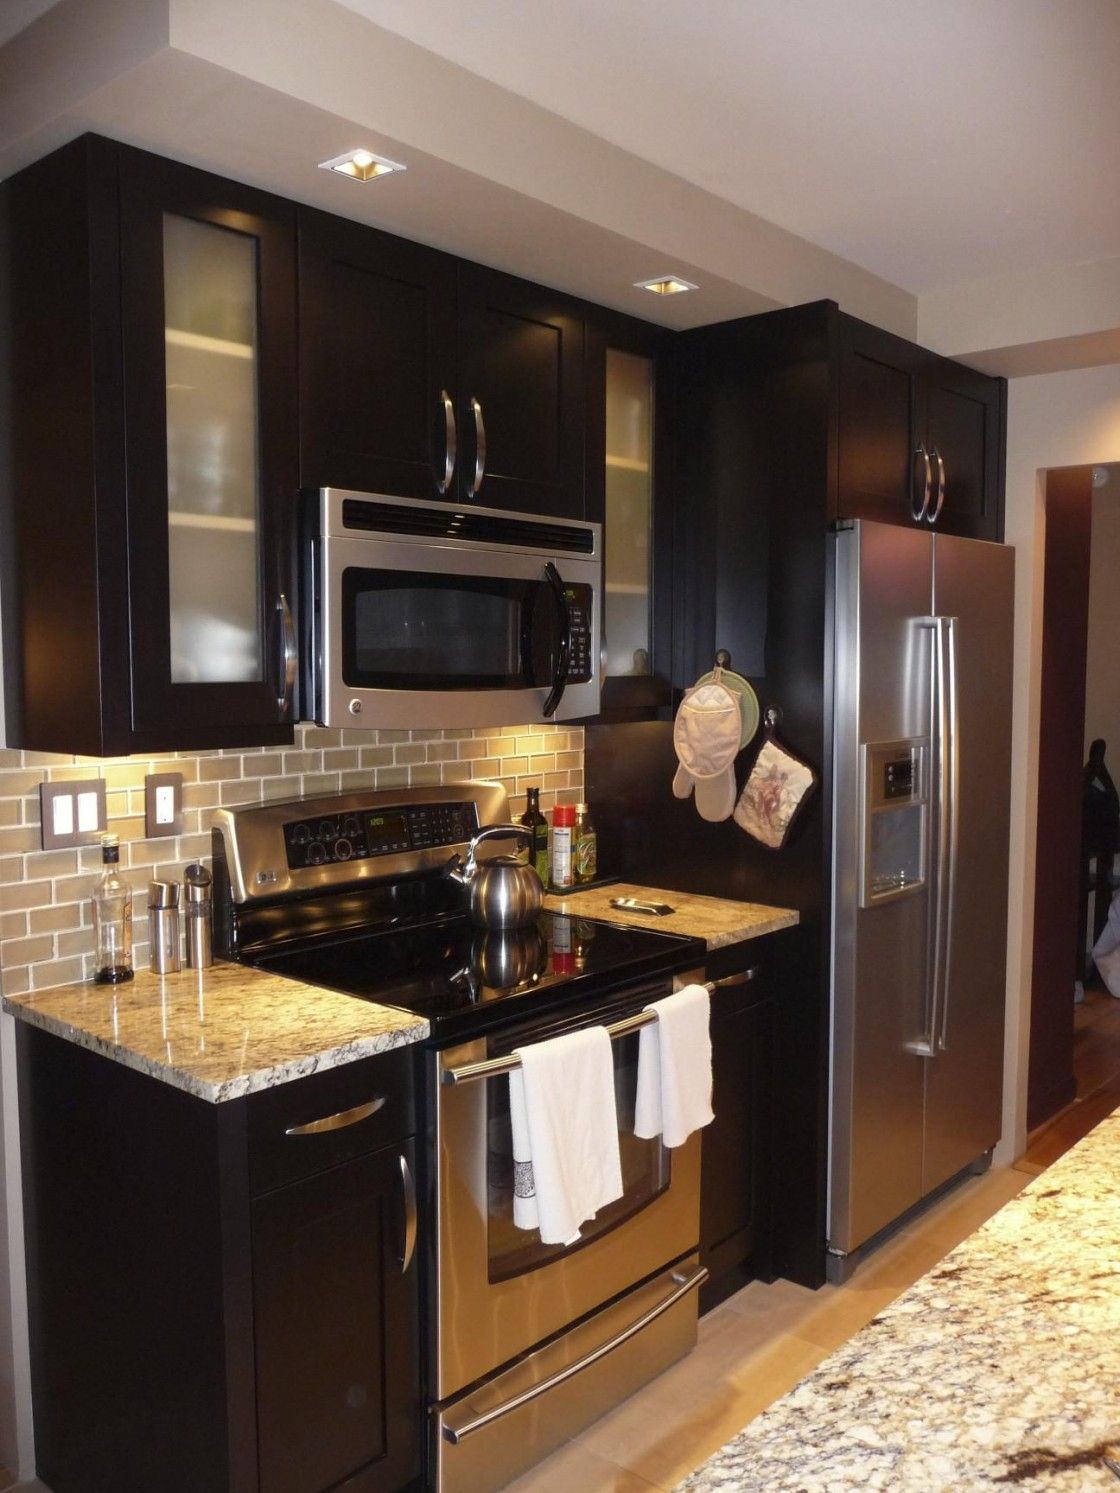 Condo Kitchen Design Ideas Contemporary fine kitchen design black cabinets saveemail laurysen kitchens ltd